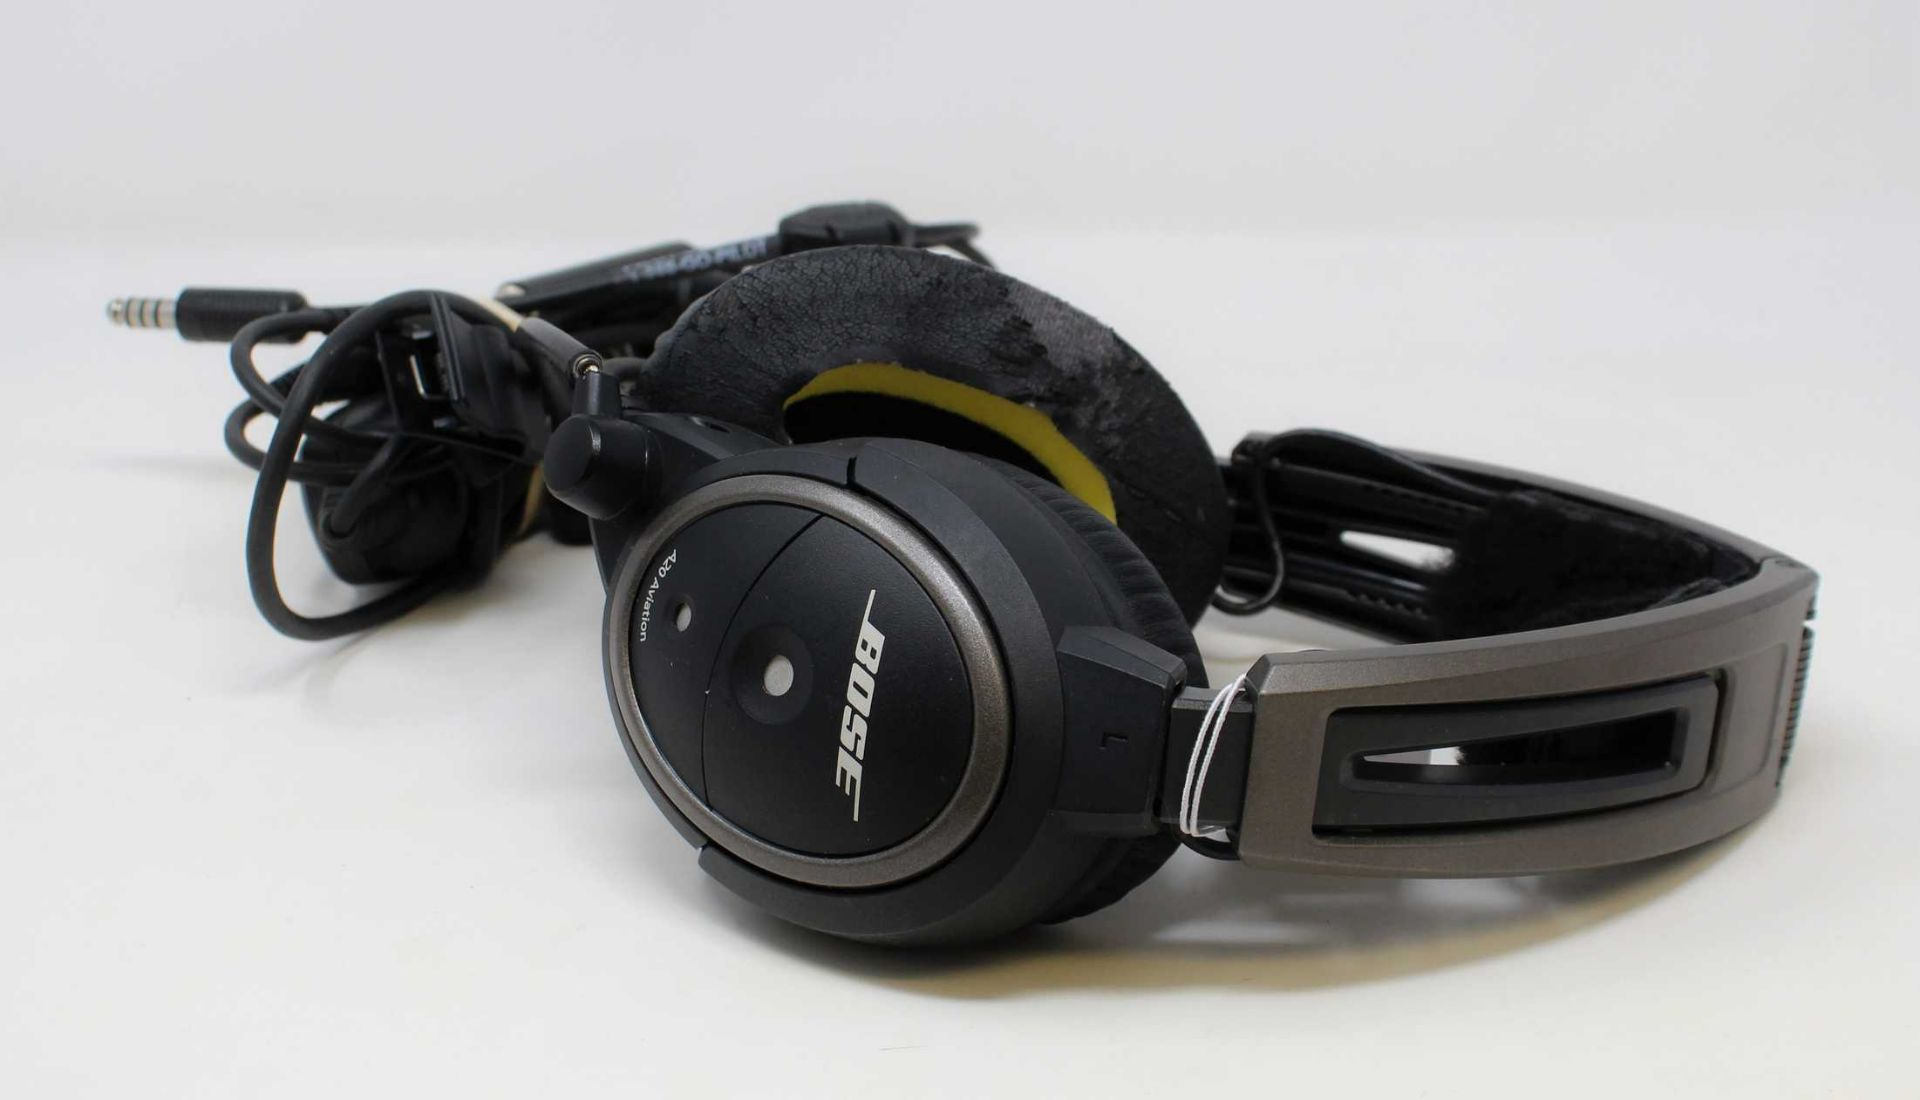 SOLD FOR SPARES OR REPAIR: A pre-owned Bose A20 Aviation Headset with Bluetooth (Untested, sold as